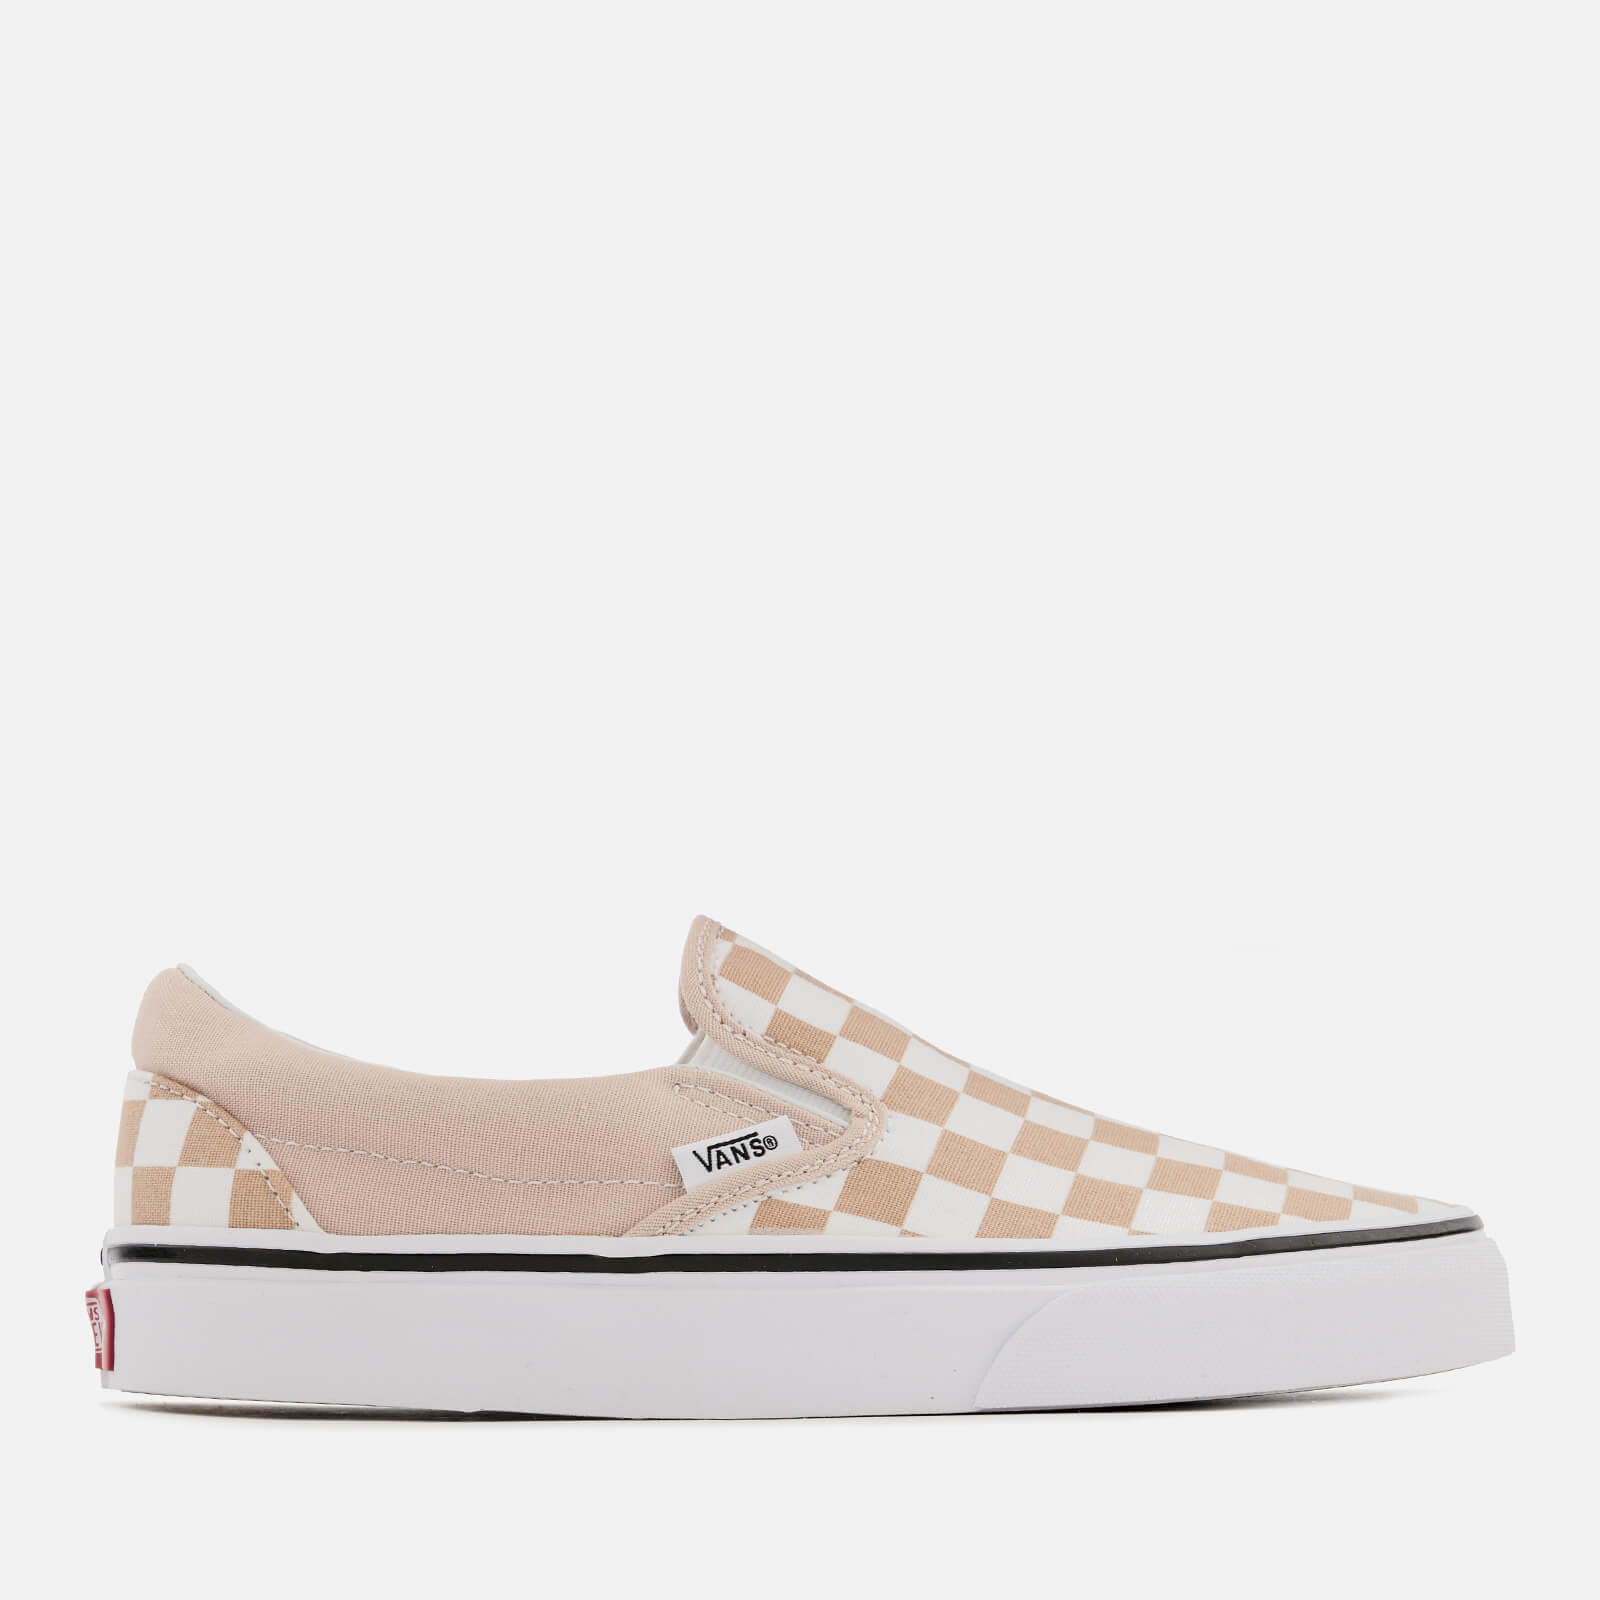 5a7312cf0a Vans Women s Checkerboard Classic Slip-On Trainers - Frappe True White  Womens Footwear